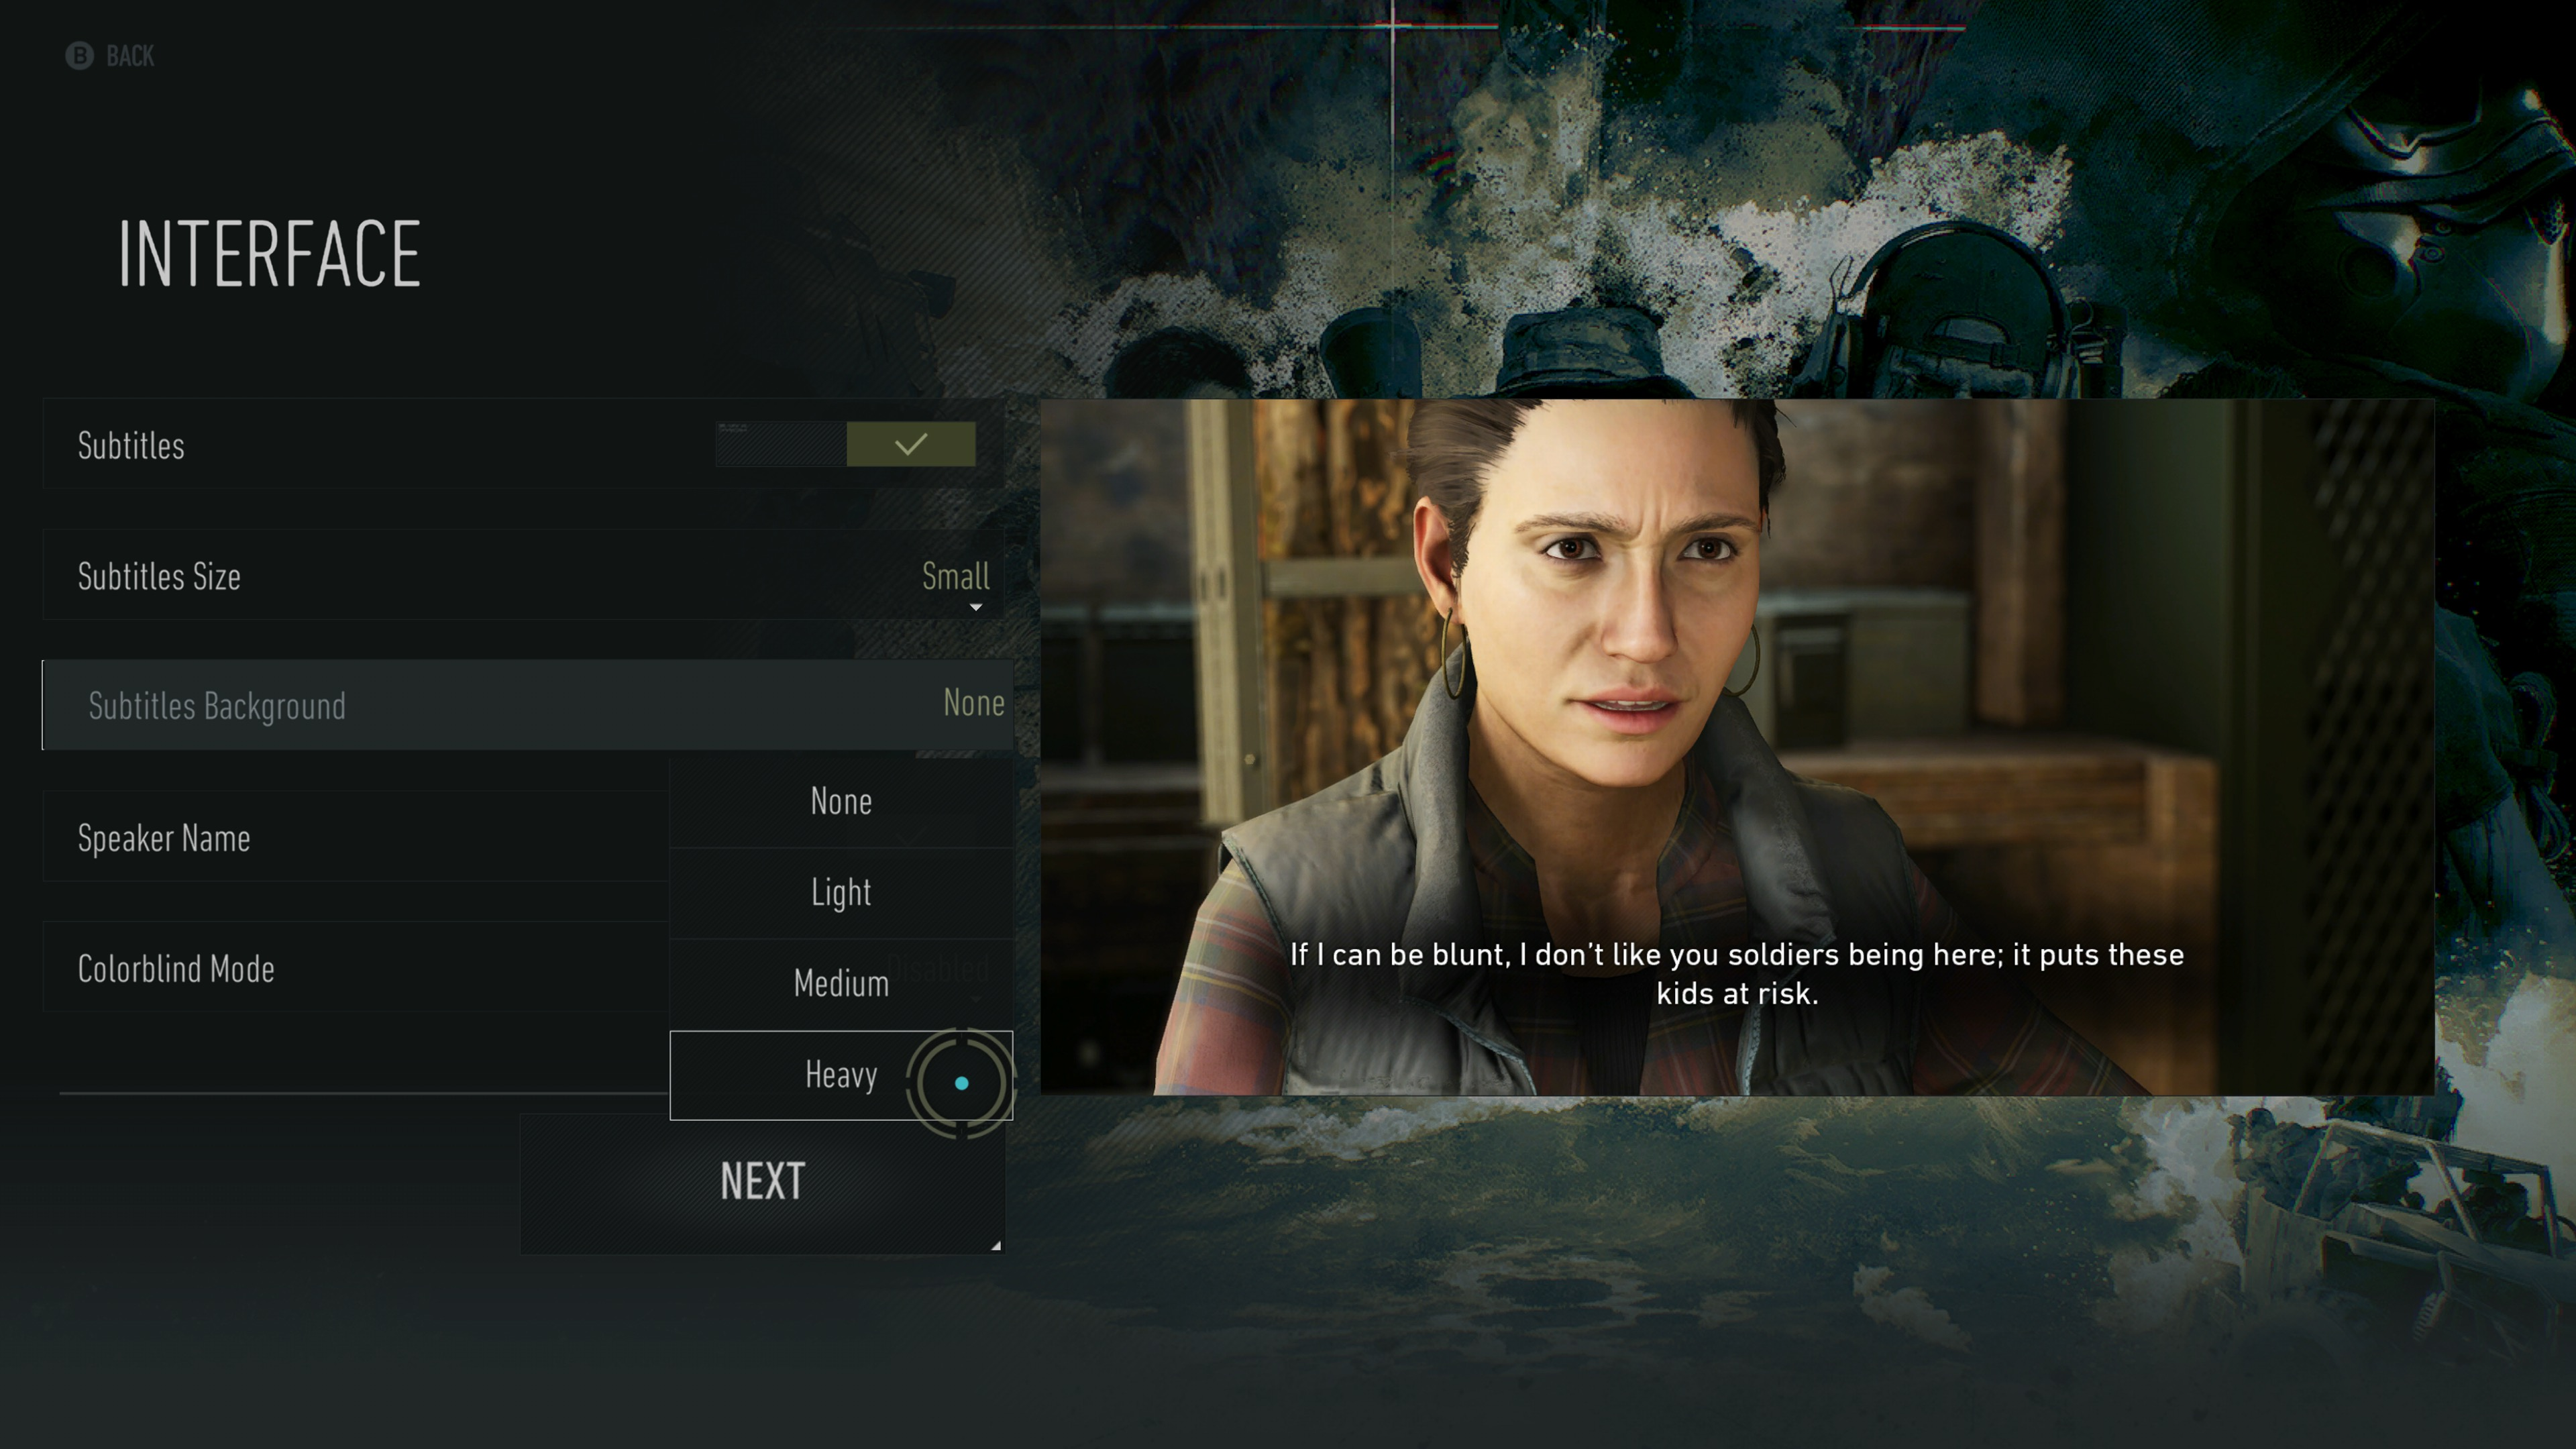 Interface options screen showing subtitle background options.